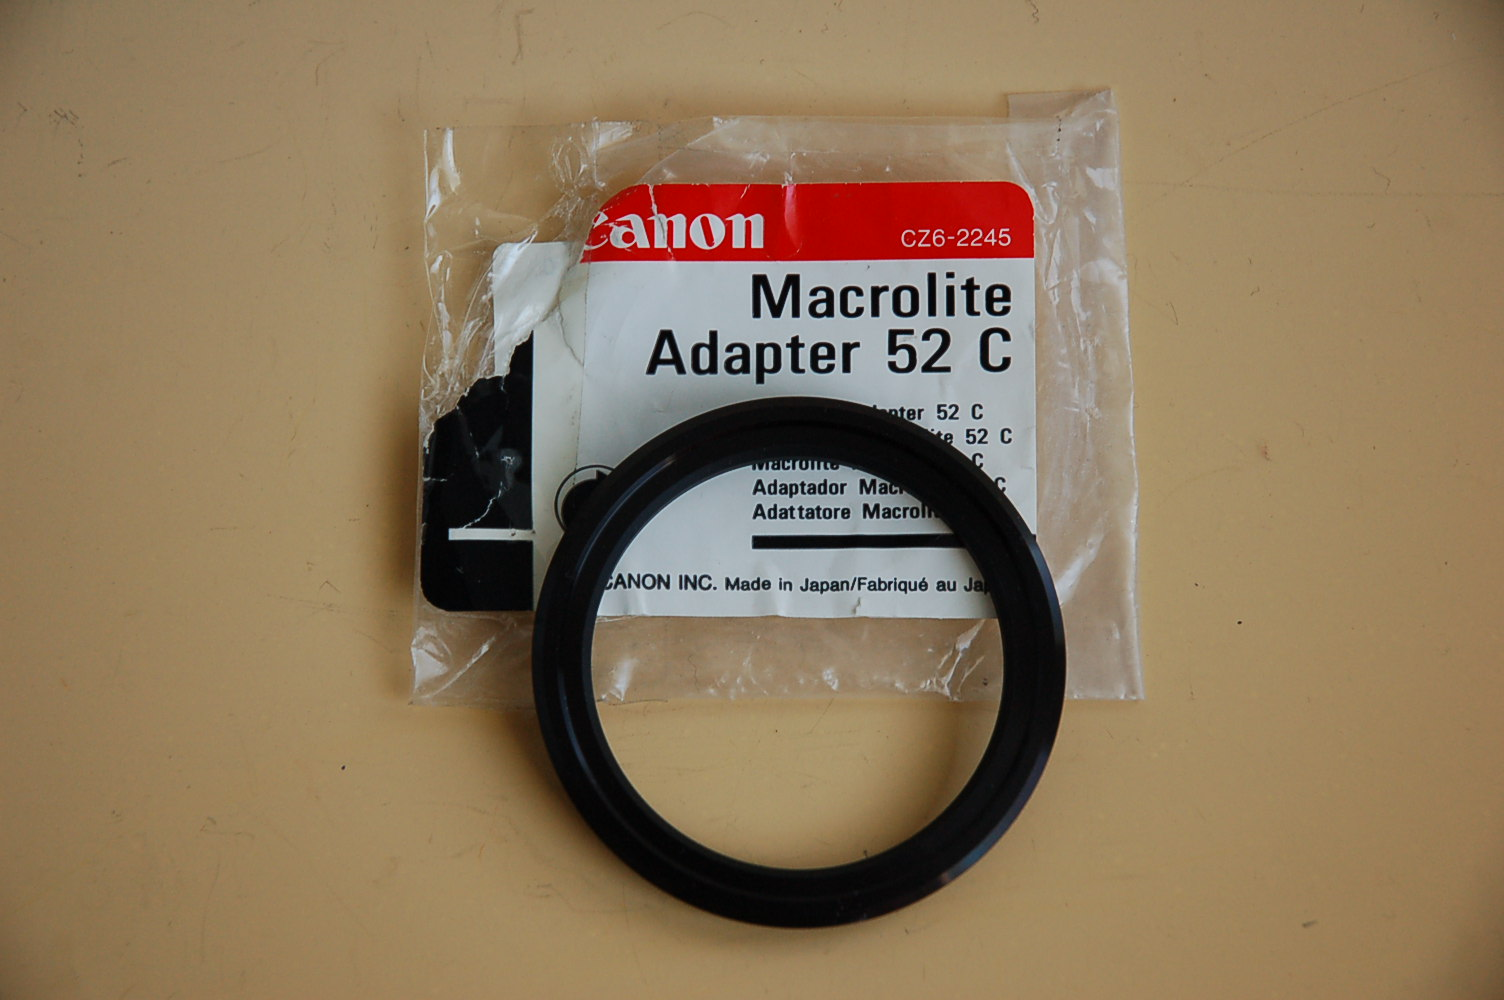 Canon Macro Ring Lite-Adapter 52C